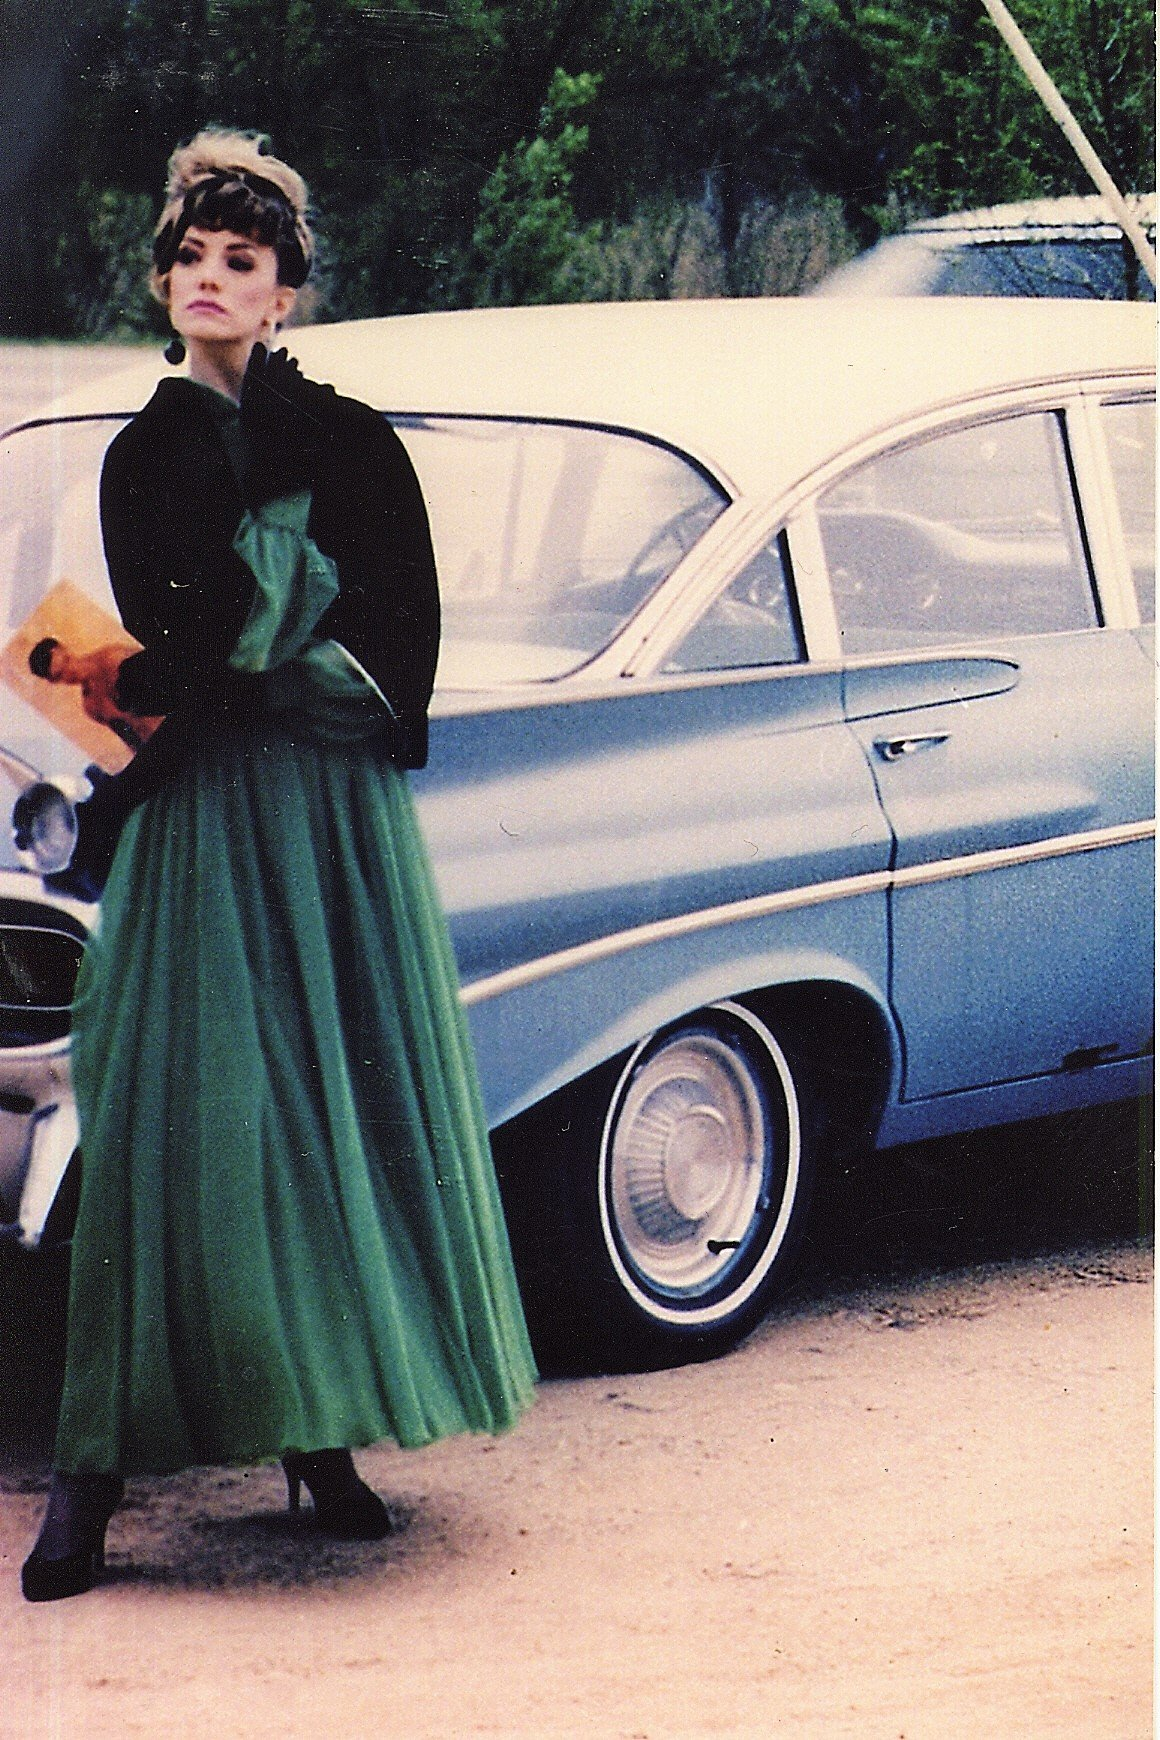 50'S CHEVY, EVENING GOWN, VELVET GLOVES, ALL ELEMENTS OF STYLE.